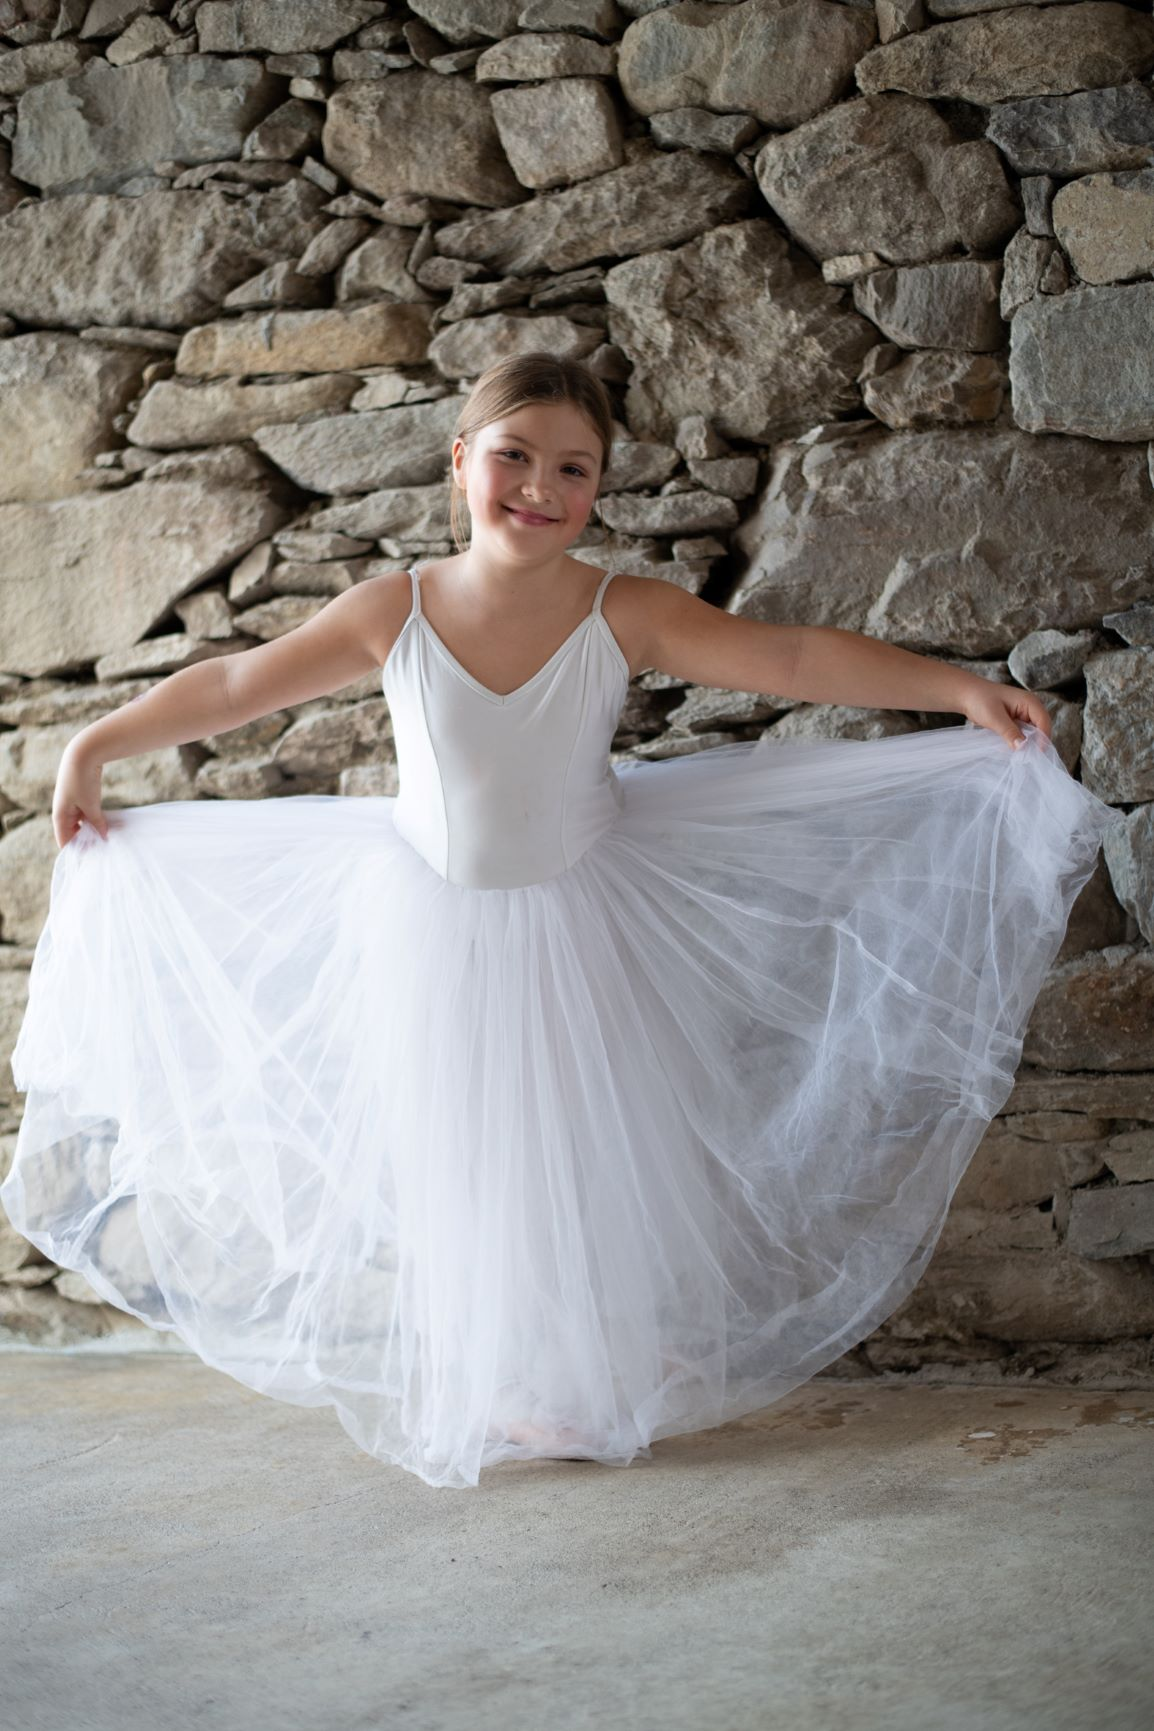 Ballerina in Long Tutu 4 - Photo © Daniela Brugger